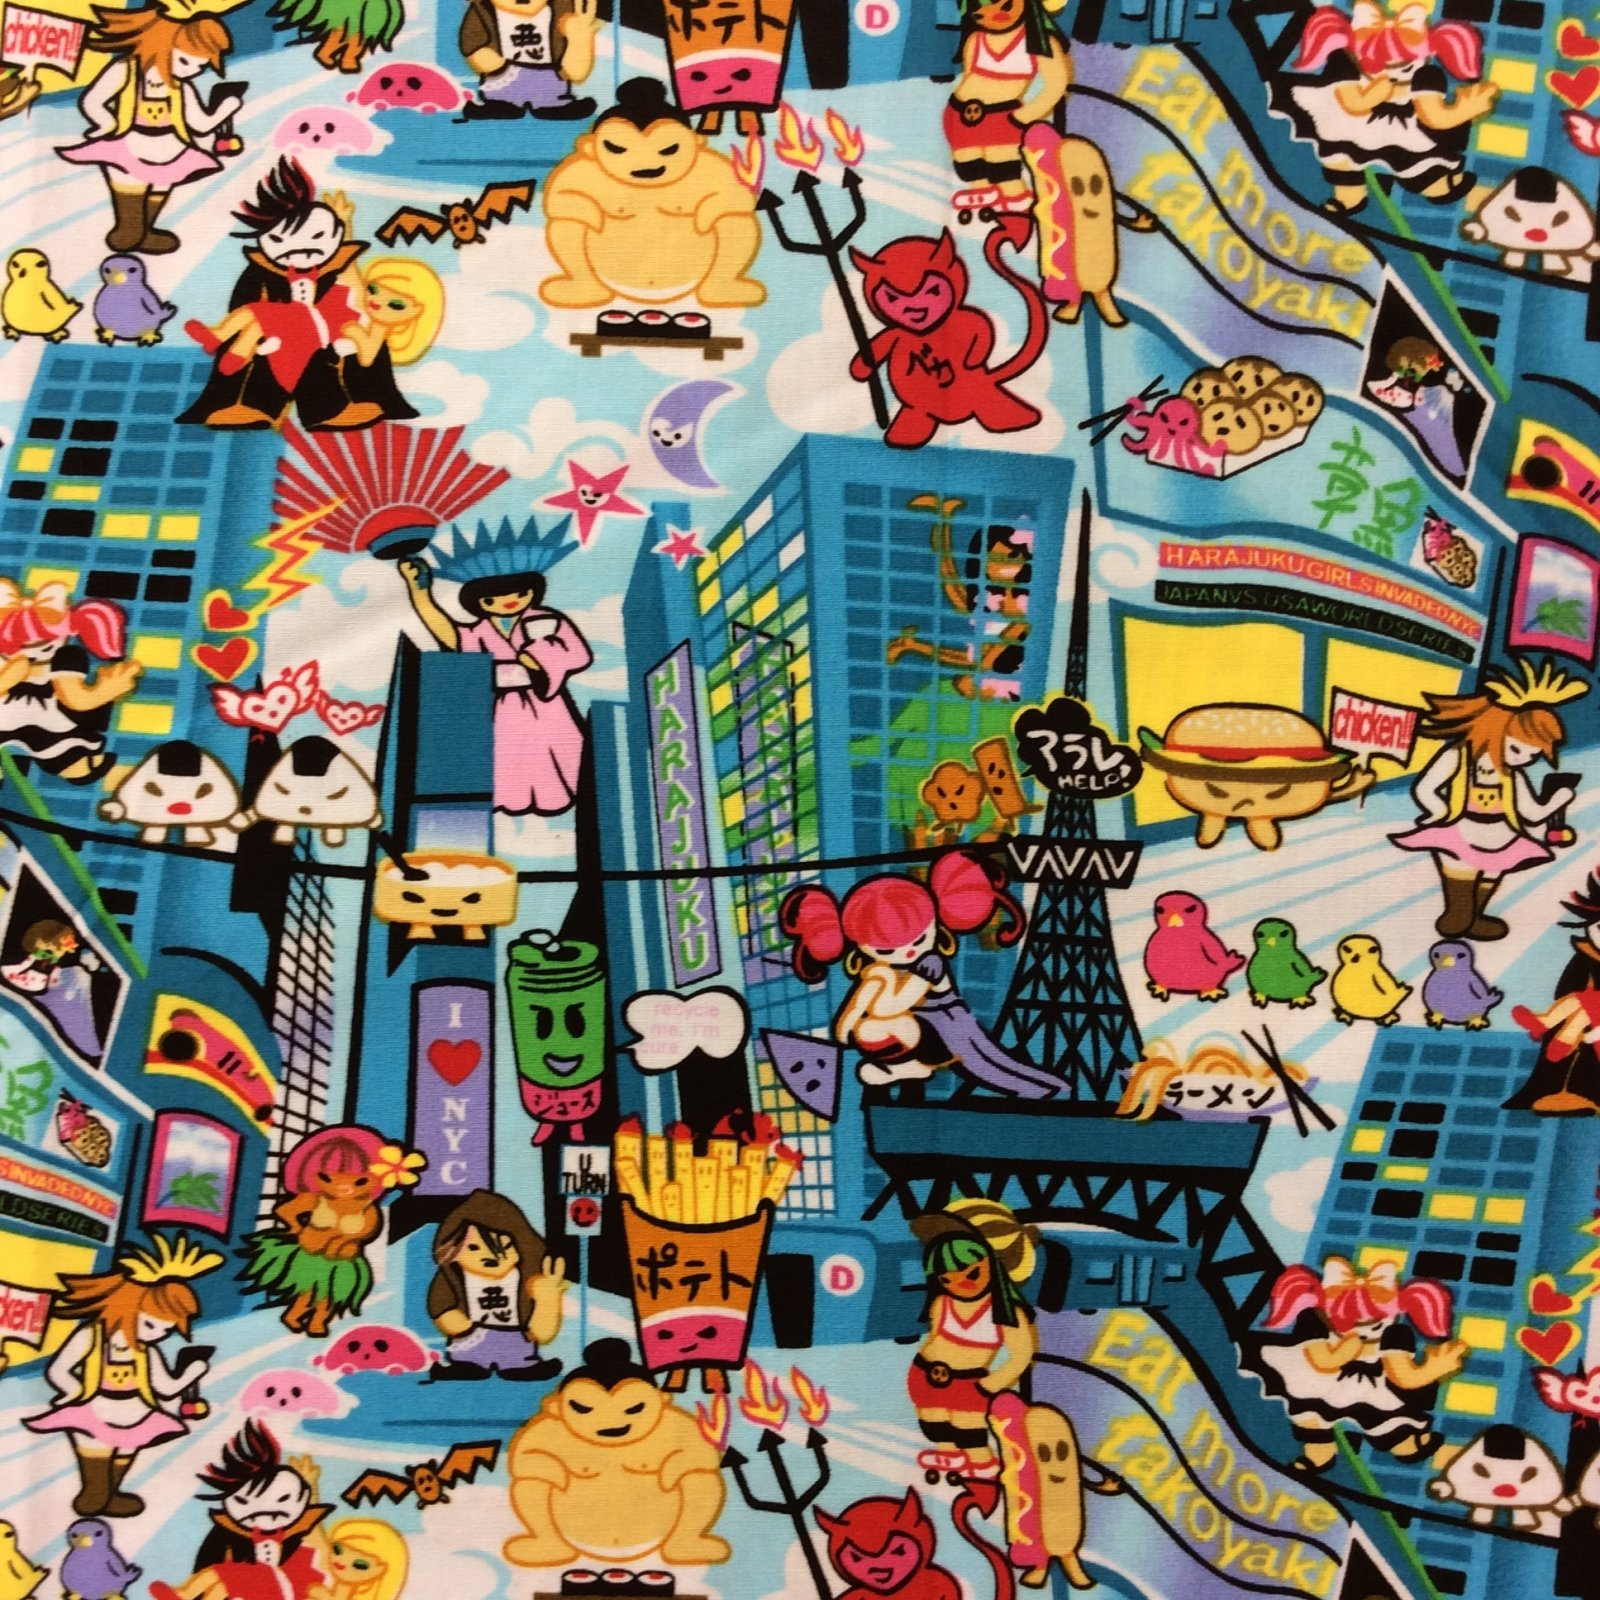 FT32 Cartoon Anime City NYC Statue of Liberty Japan Quilt Cotton Quilting Fabric